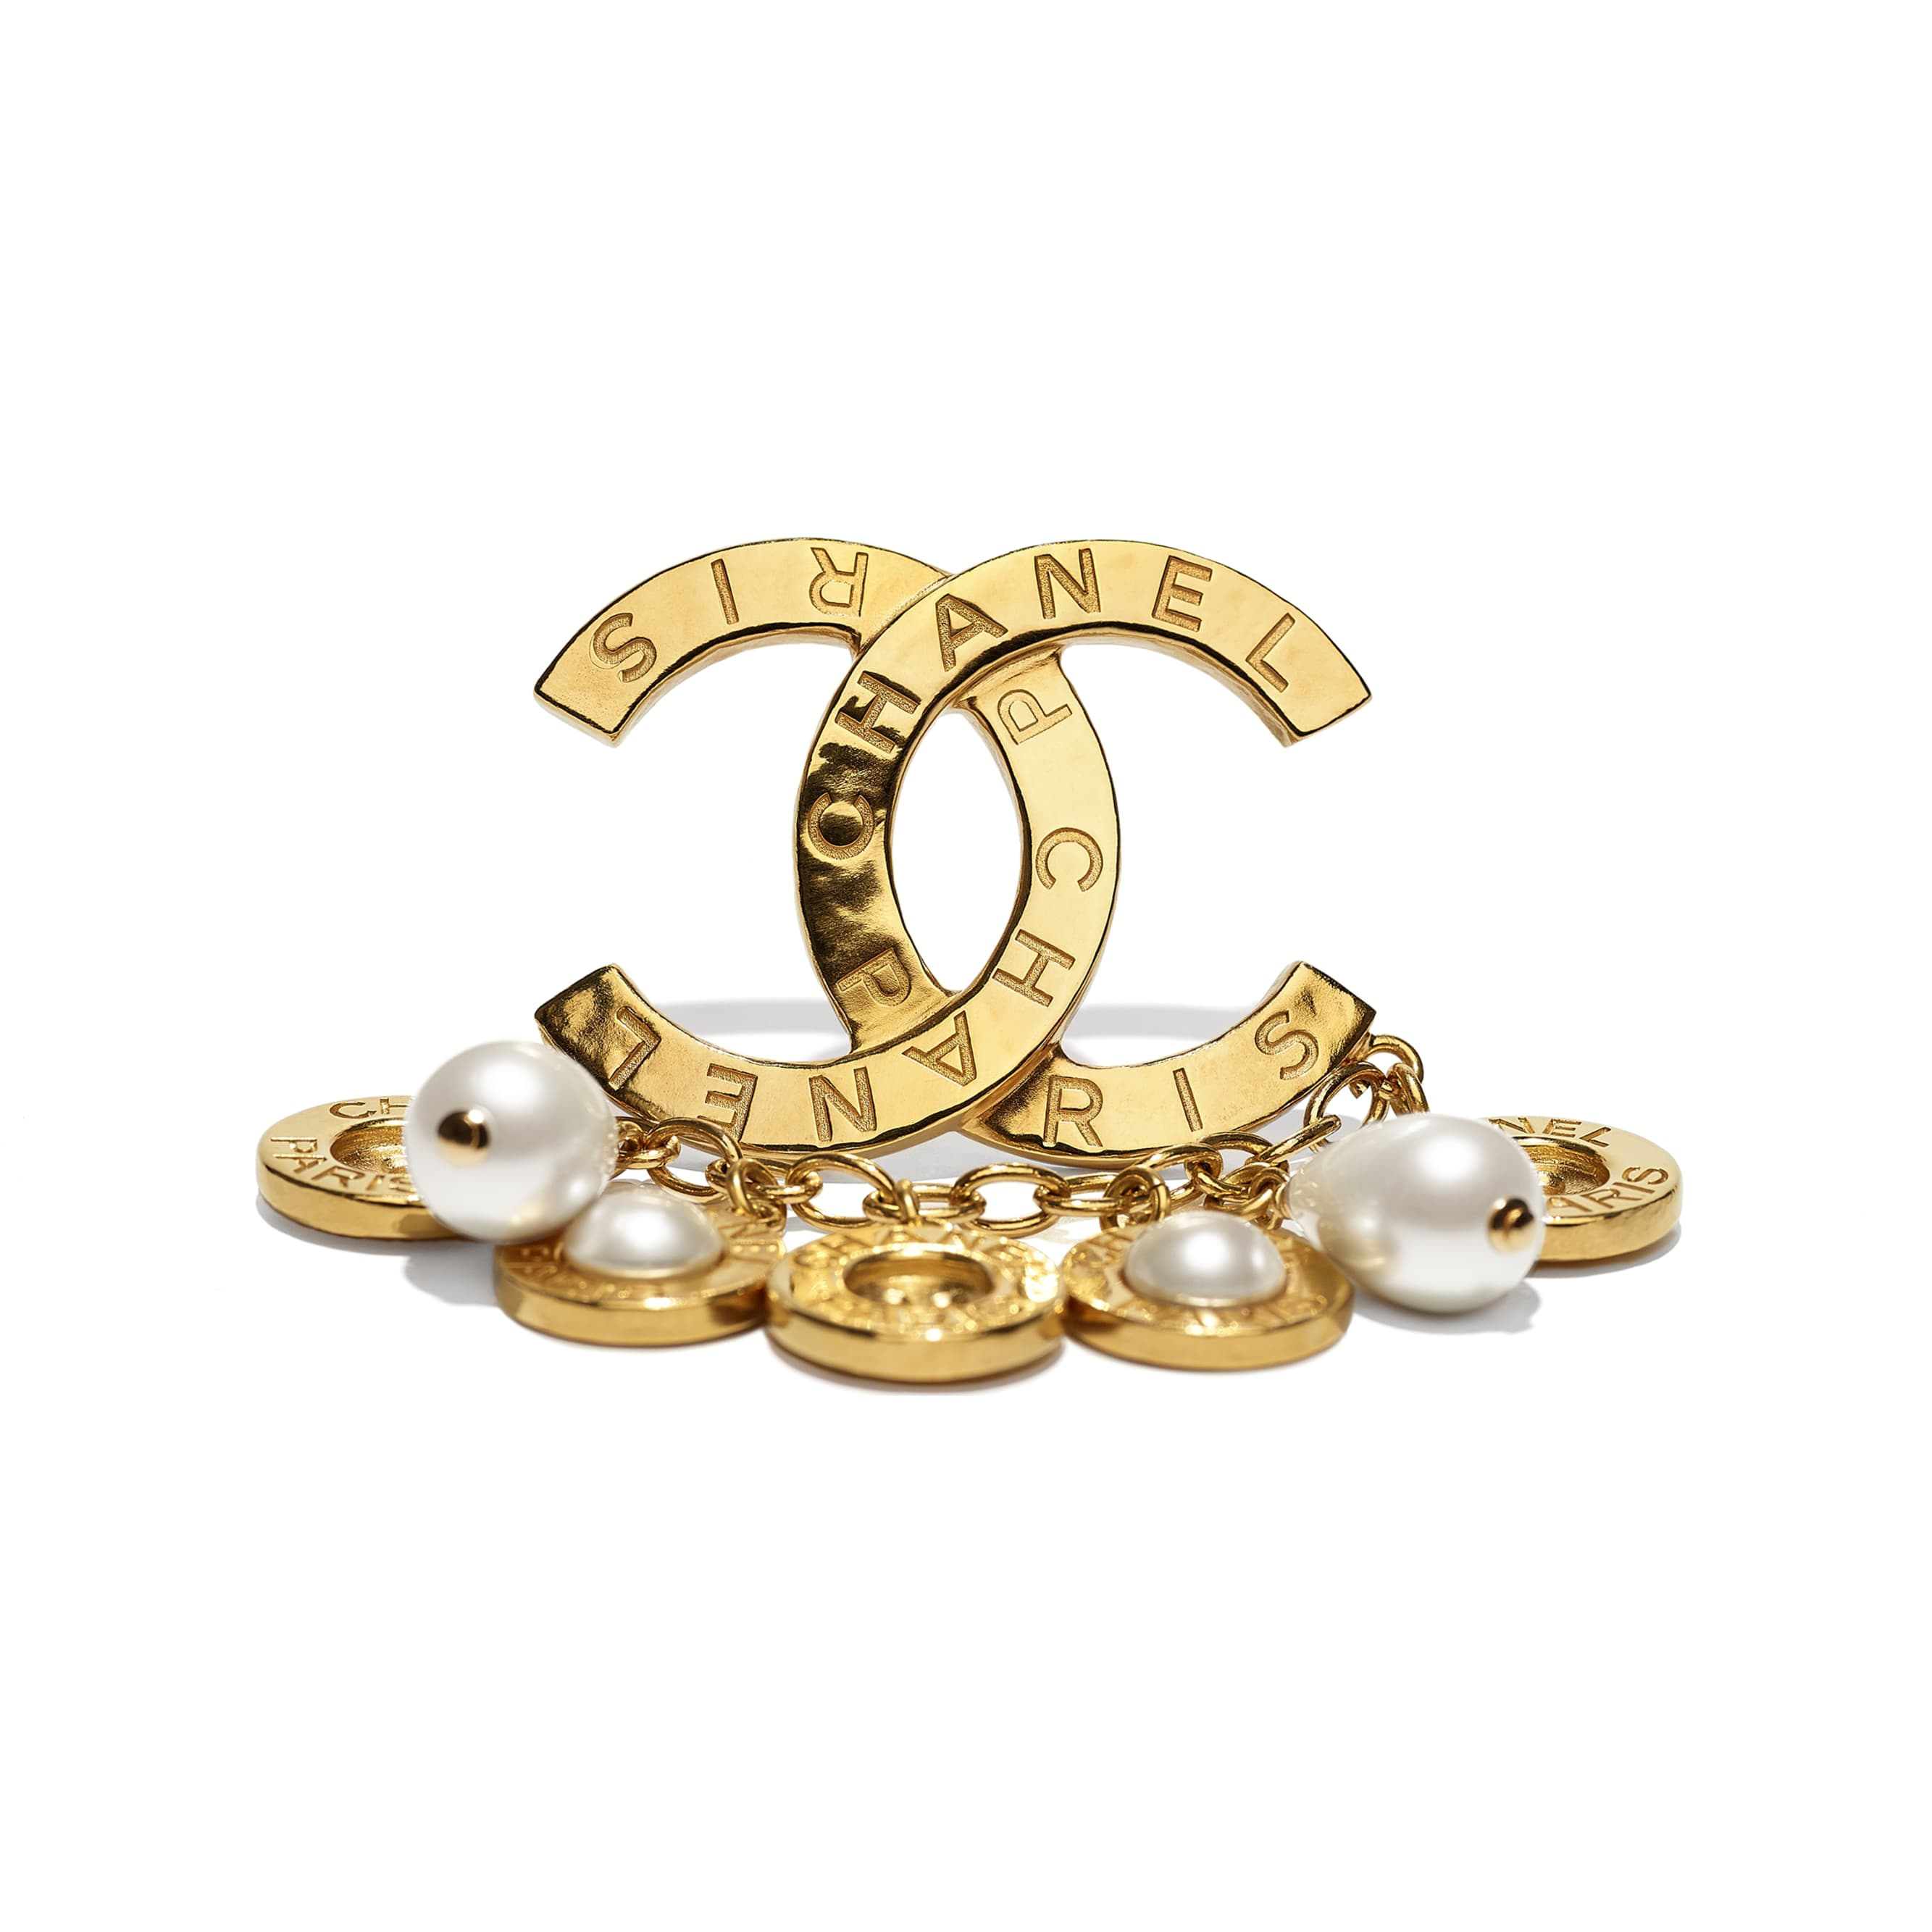 Brooch - Gold & Pearly White - Metal, Glass Pearls & Imitation Pearls - CHANEL - Alternative view - see standard sized version